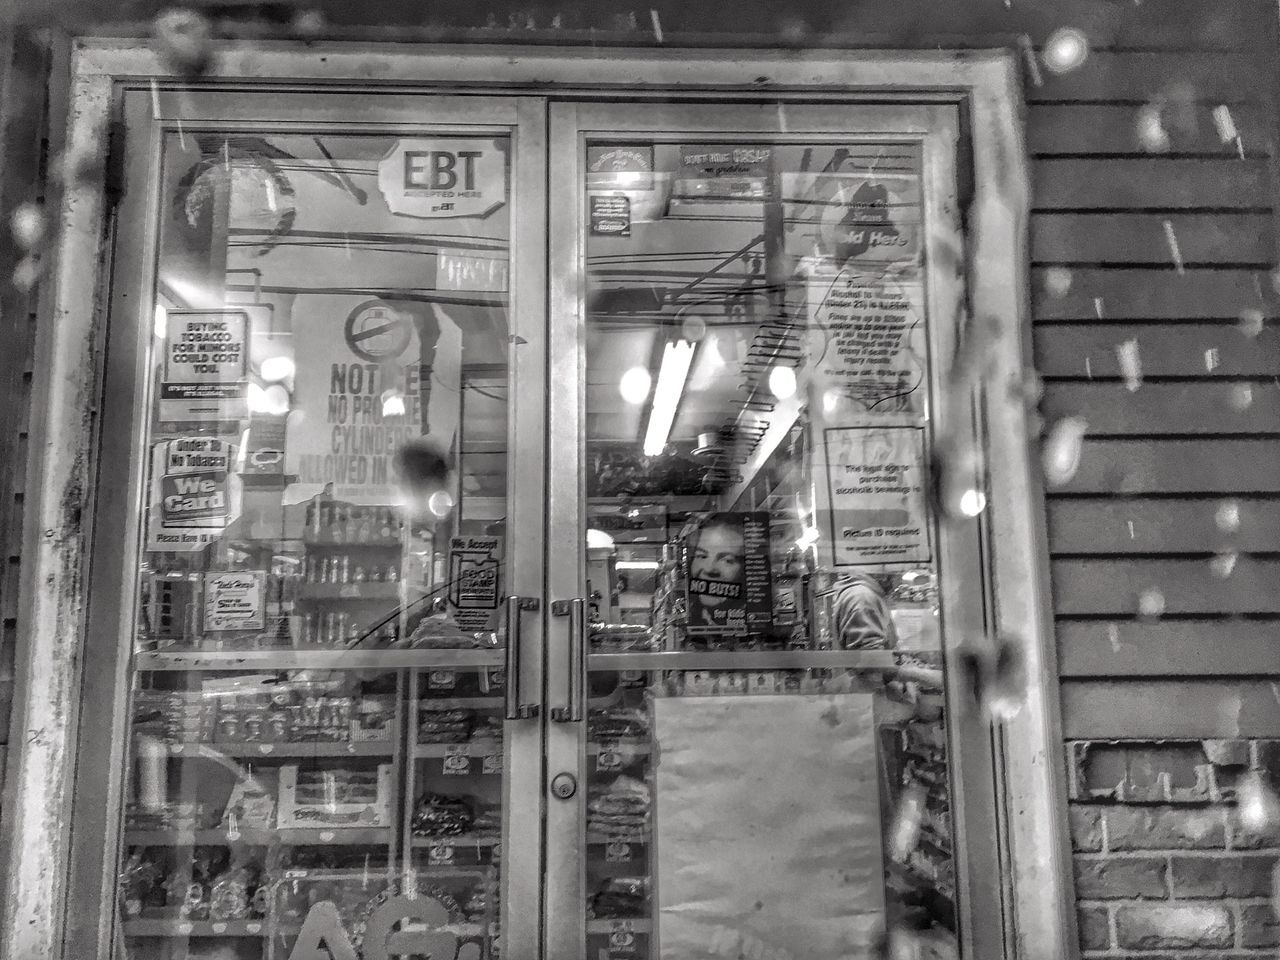 No People Day Architecture Outdoors Convenience Store Doors Looking Out Of The Window Waiting Snow Water Drops Groceries Retail  Blackandwhite Monochrome SWH., ME